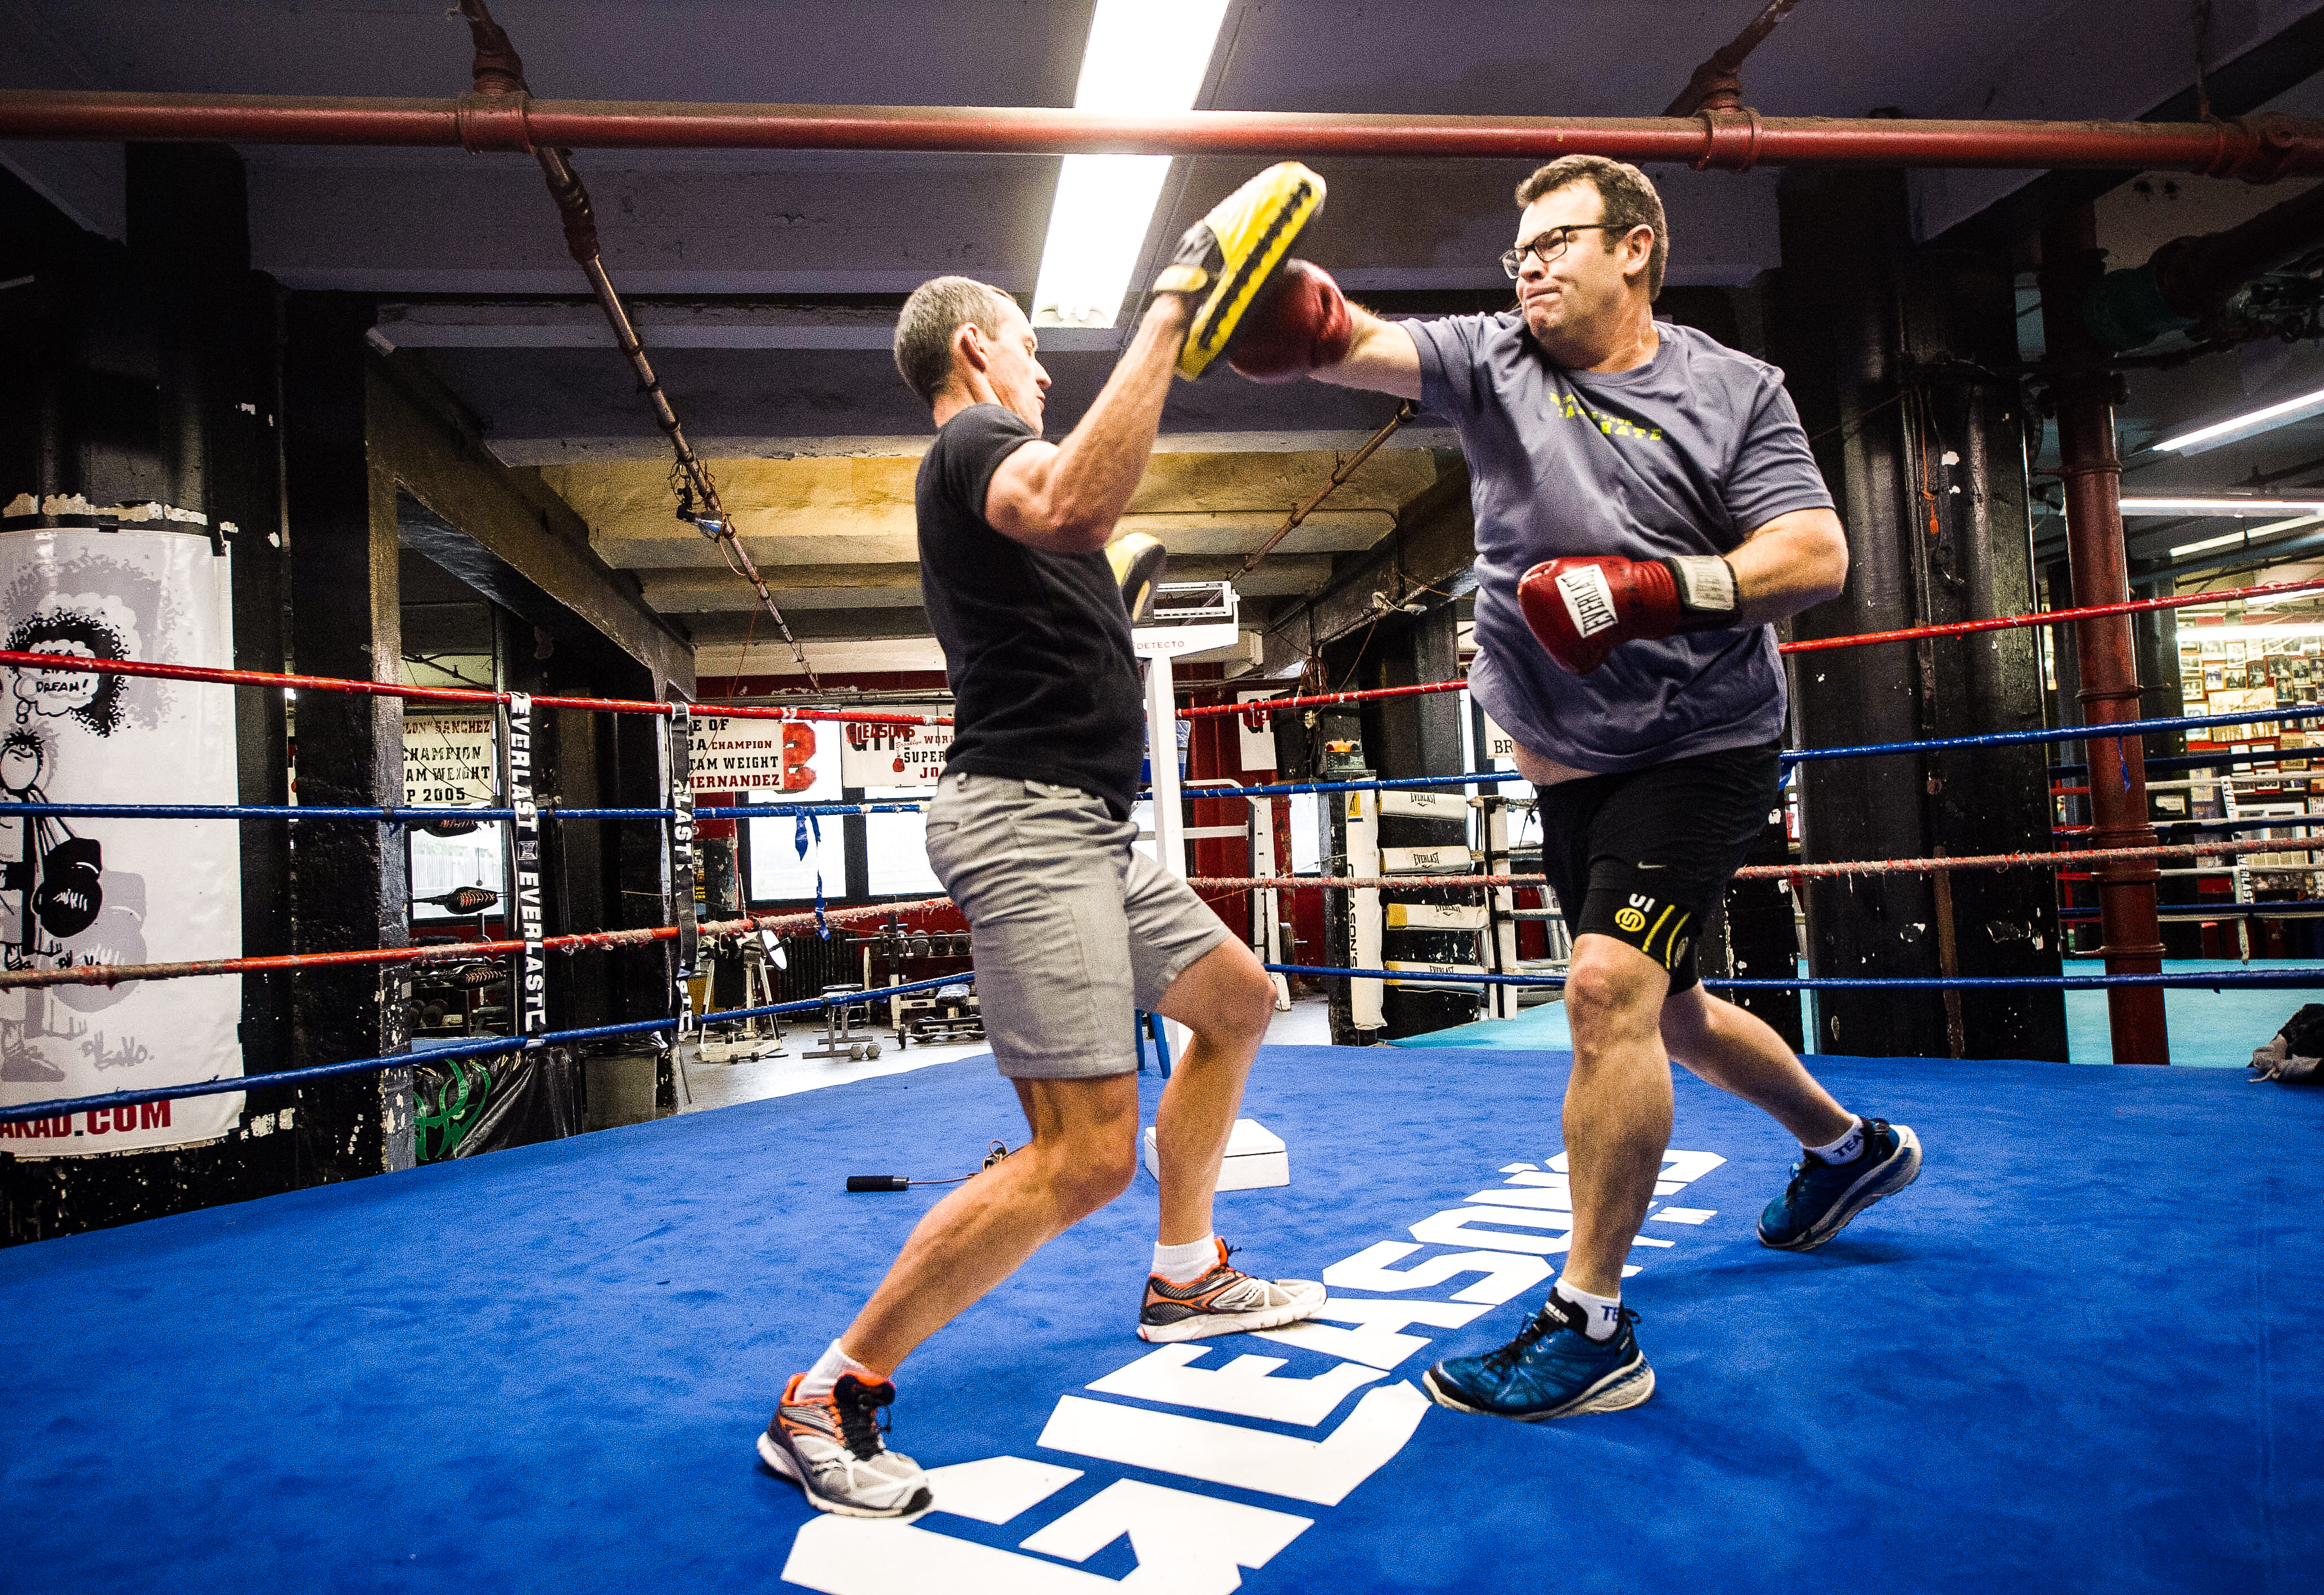 GWMM Gus in boxing ring-2014